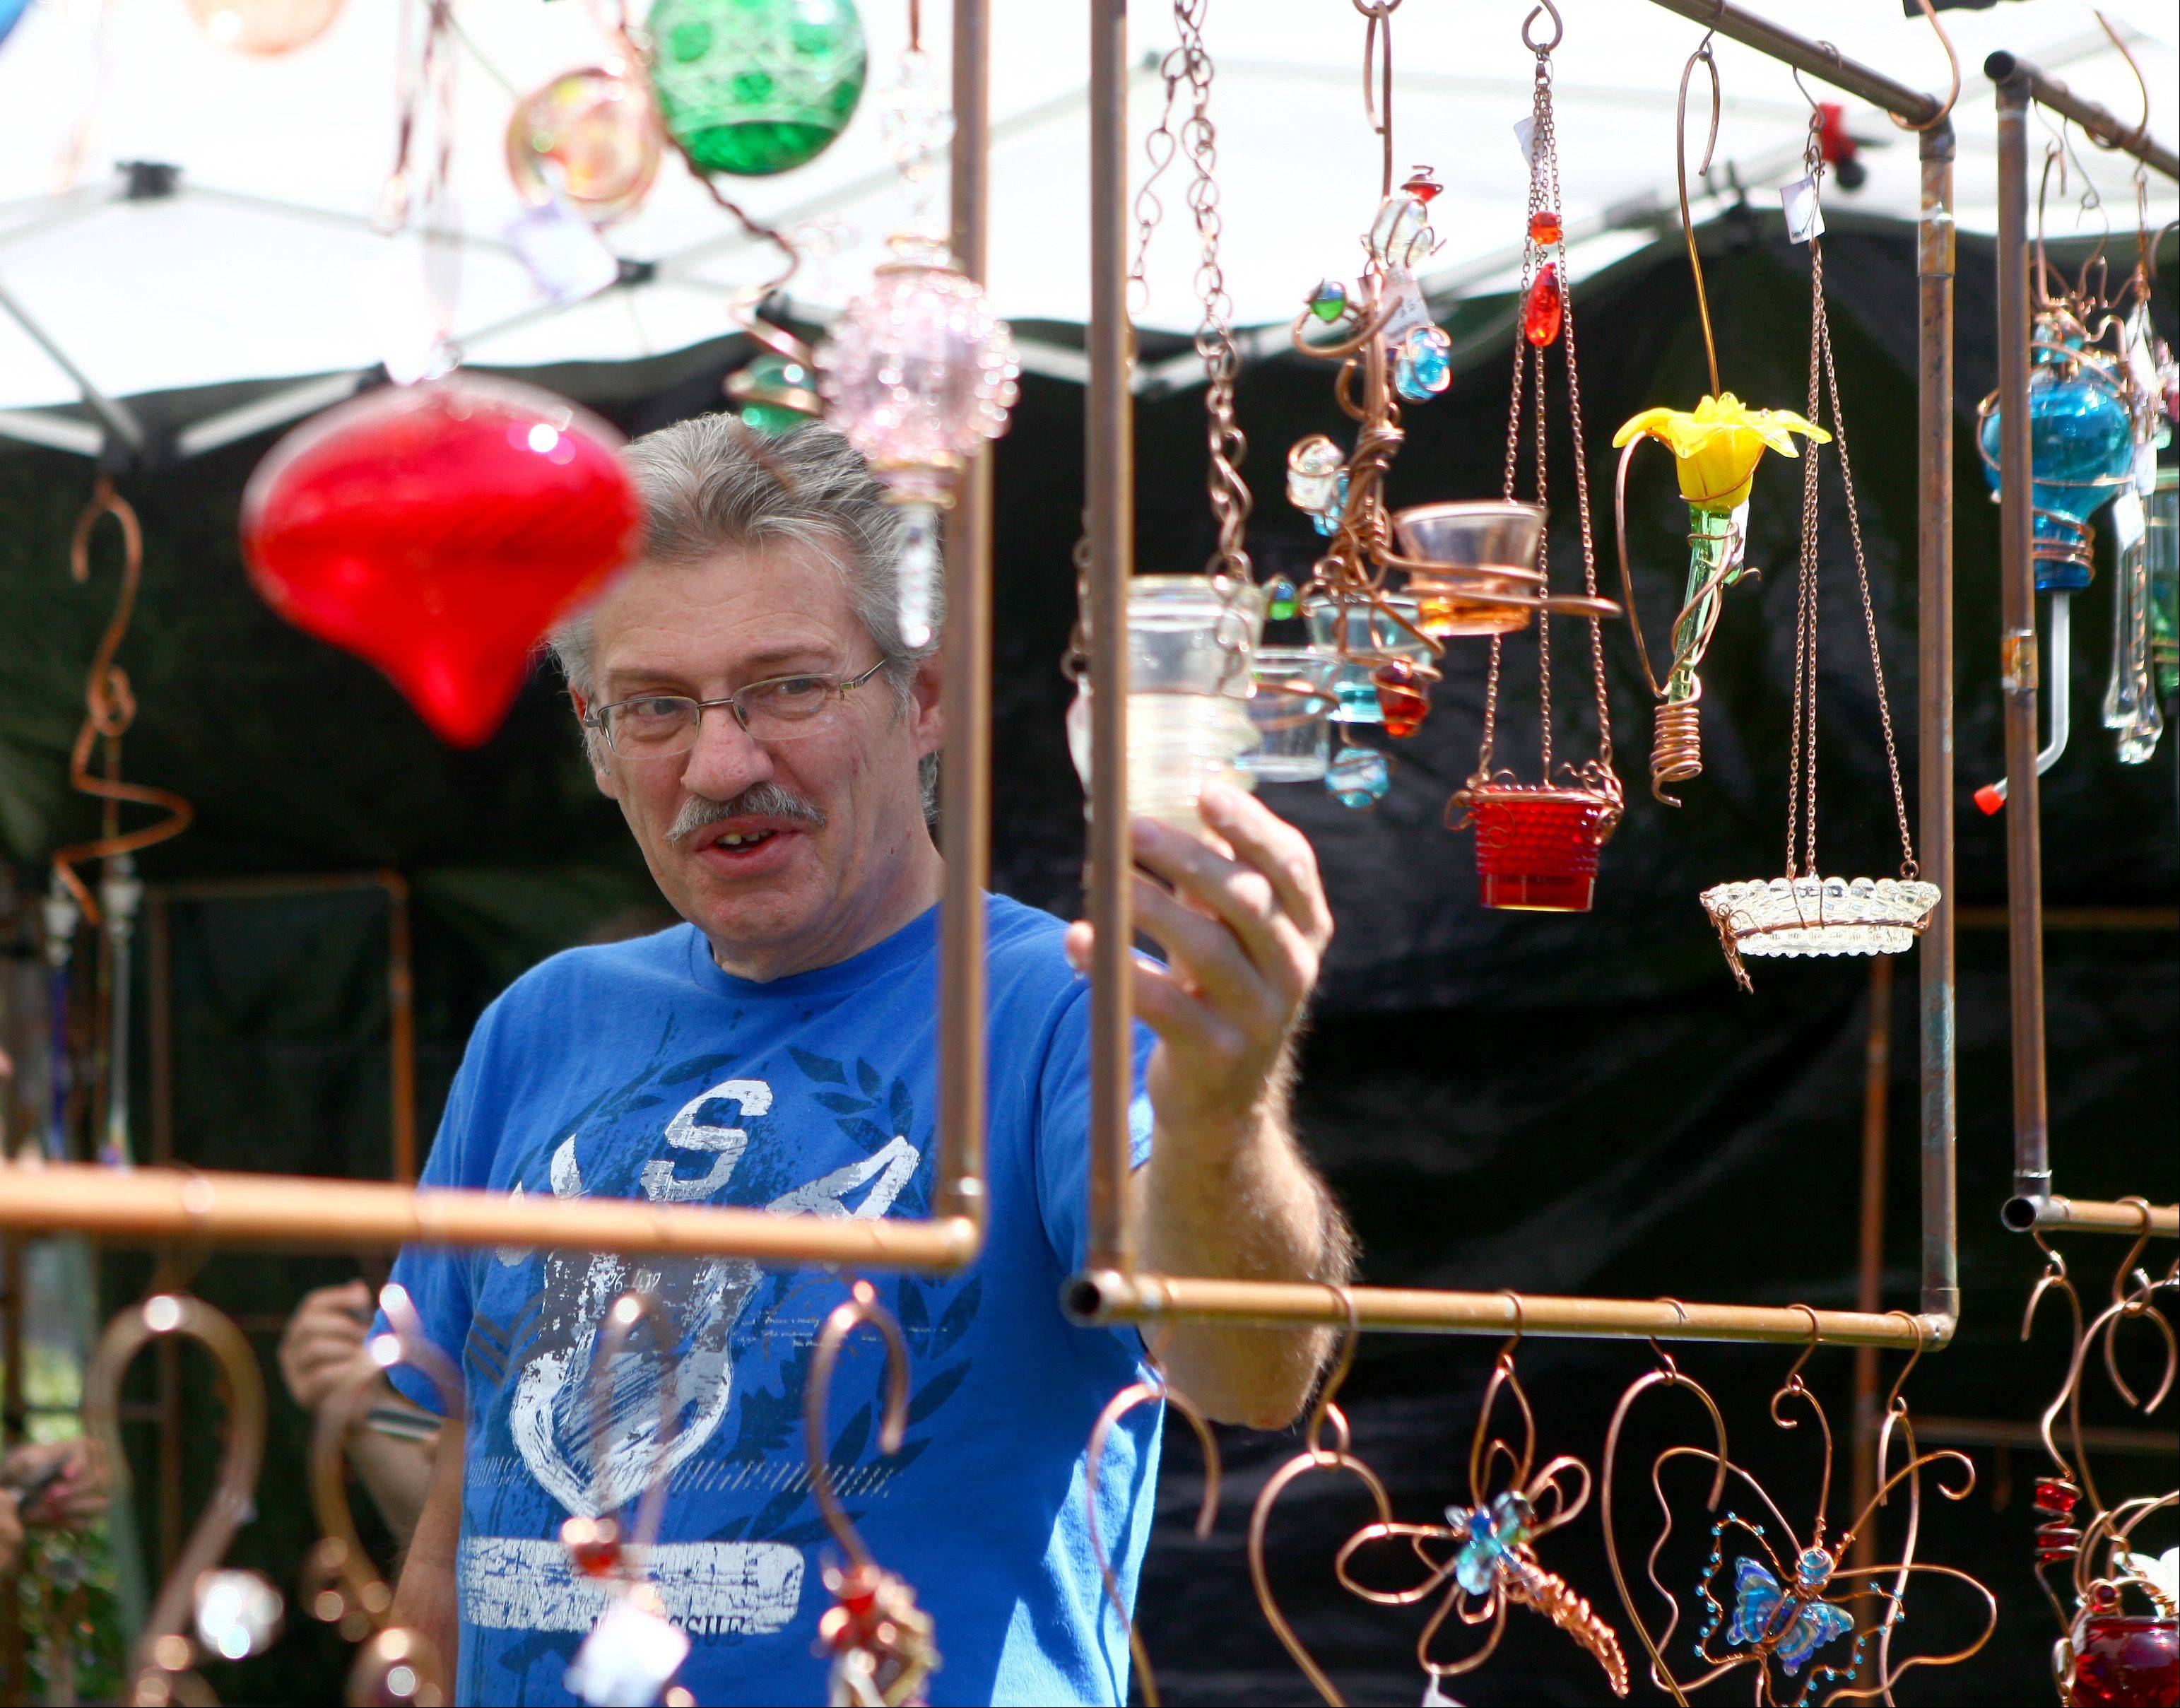 Mike Hardesty, from Rockford, shows a customer a garden decoration at his wife's booth at the 2011 A Walk in the Park.